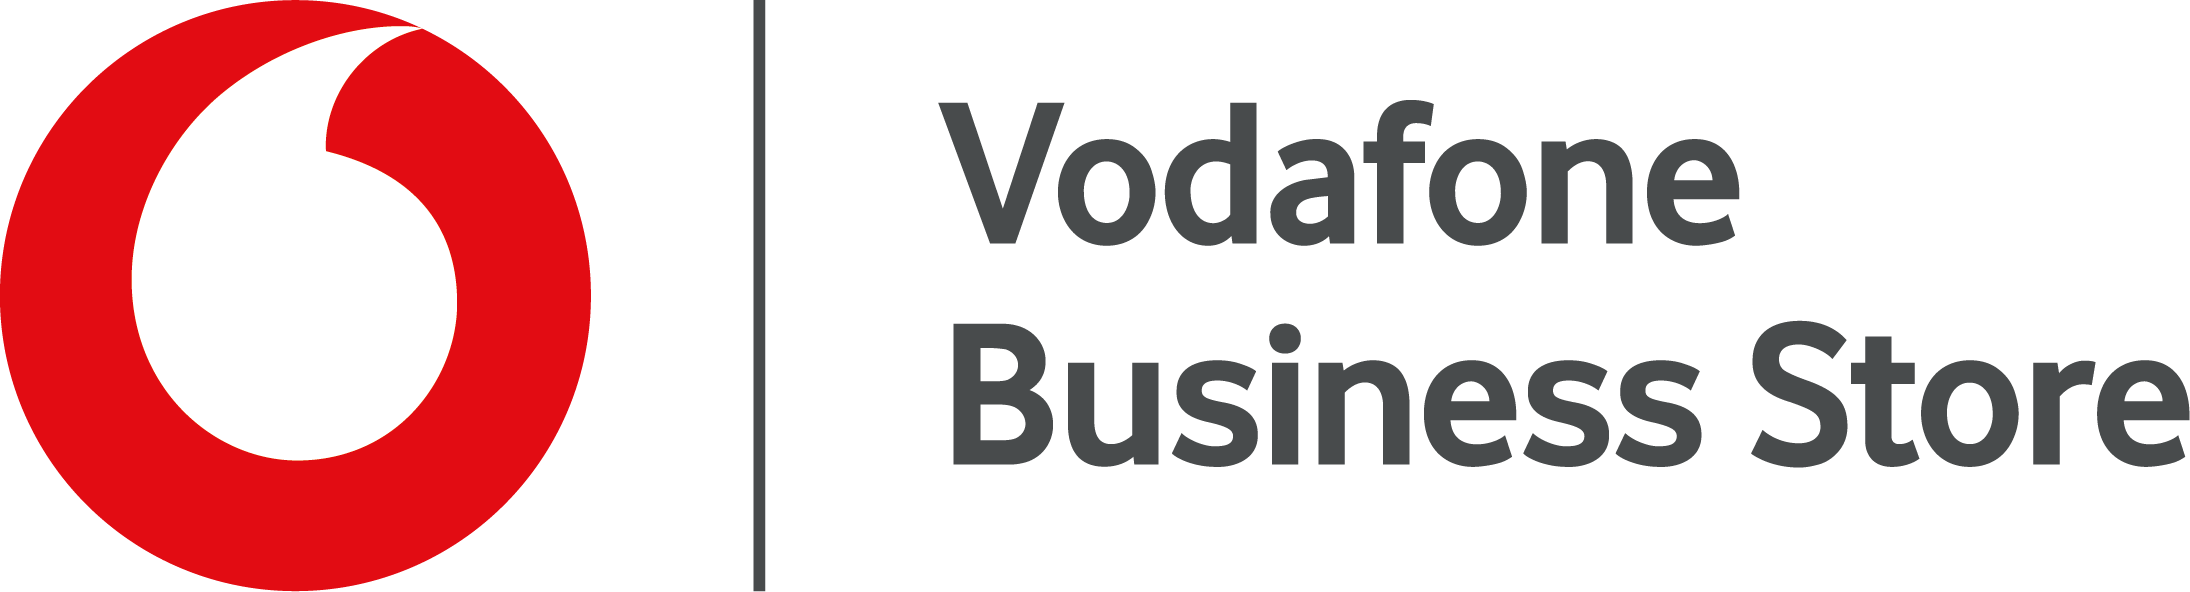 Vodafone Business Store